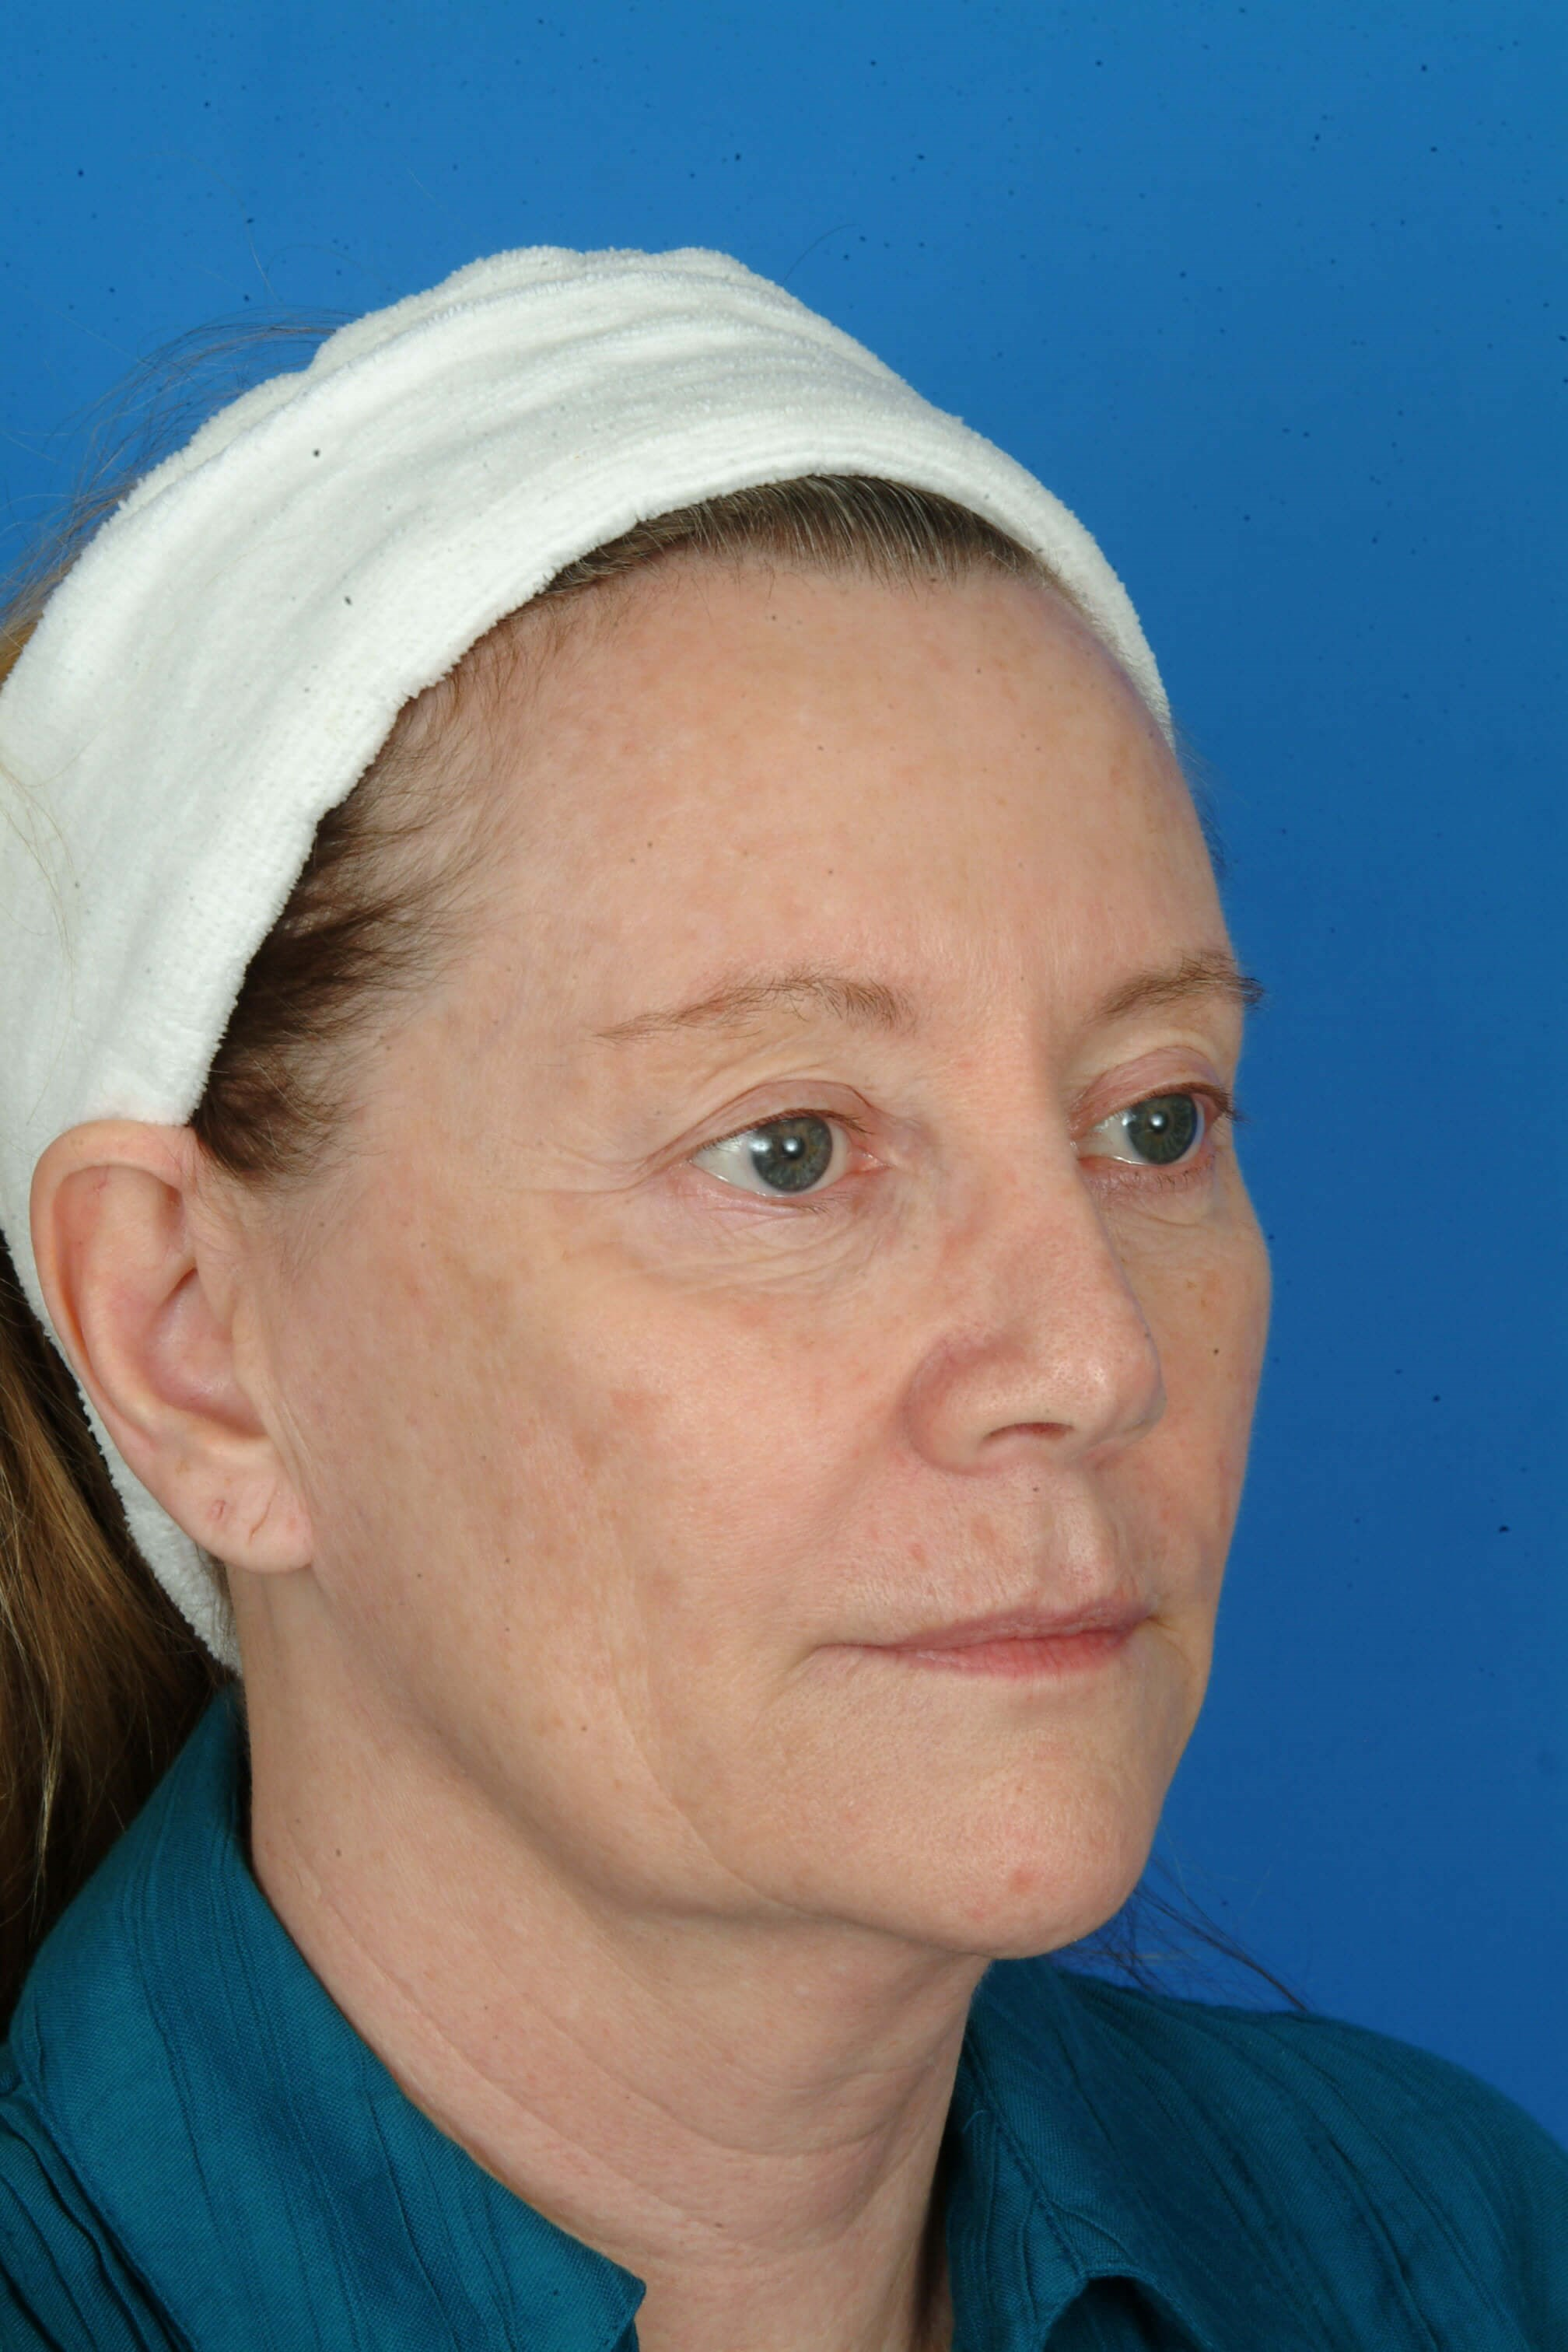 Three Quarter View Before Laser Skin Resurfacing